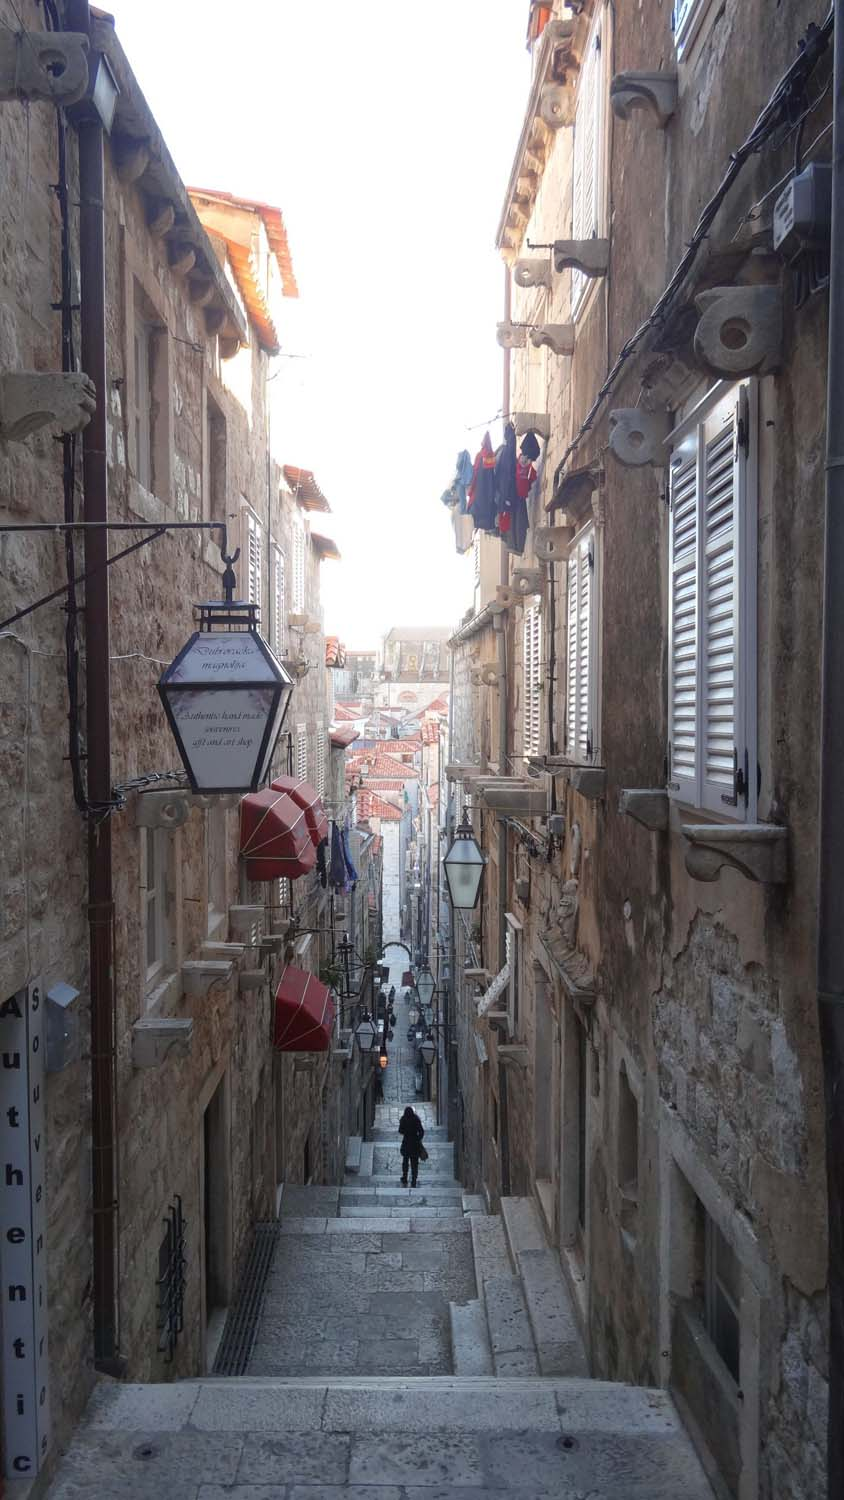 Dubrovnik - not a great place for a wheelchair, but it's a stunning old town